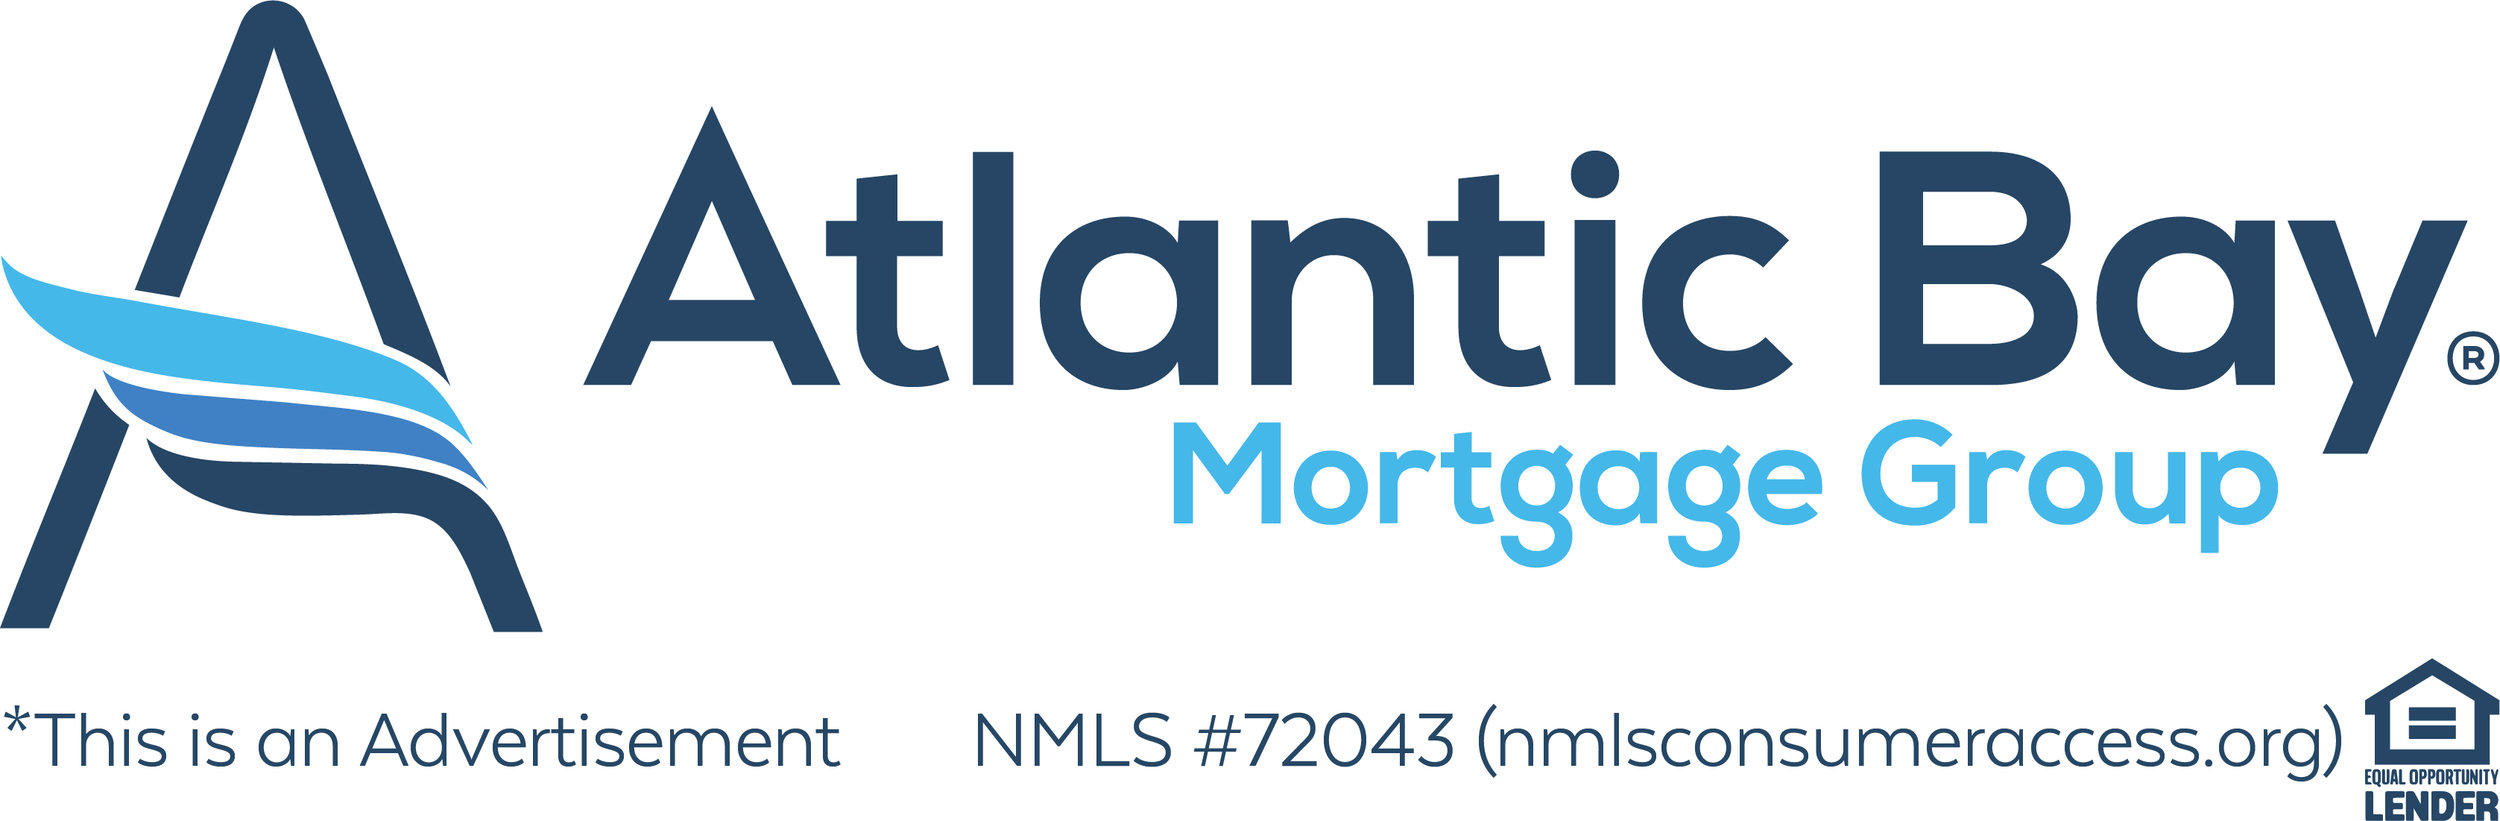 atlantic bay mortgage group.jpg